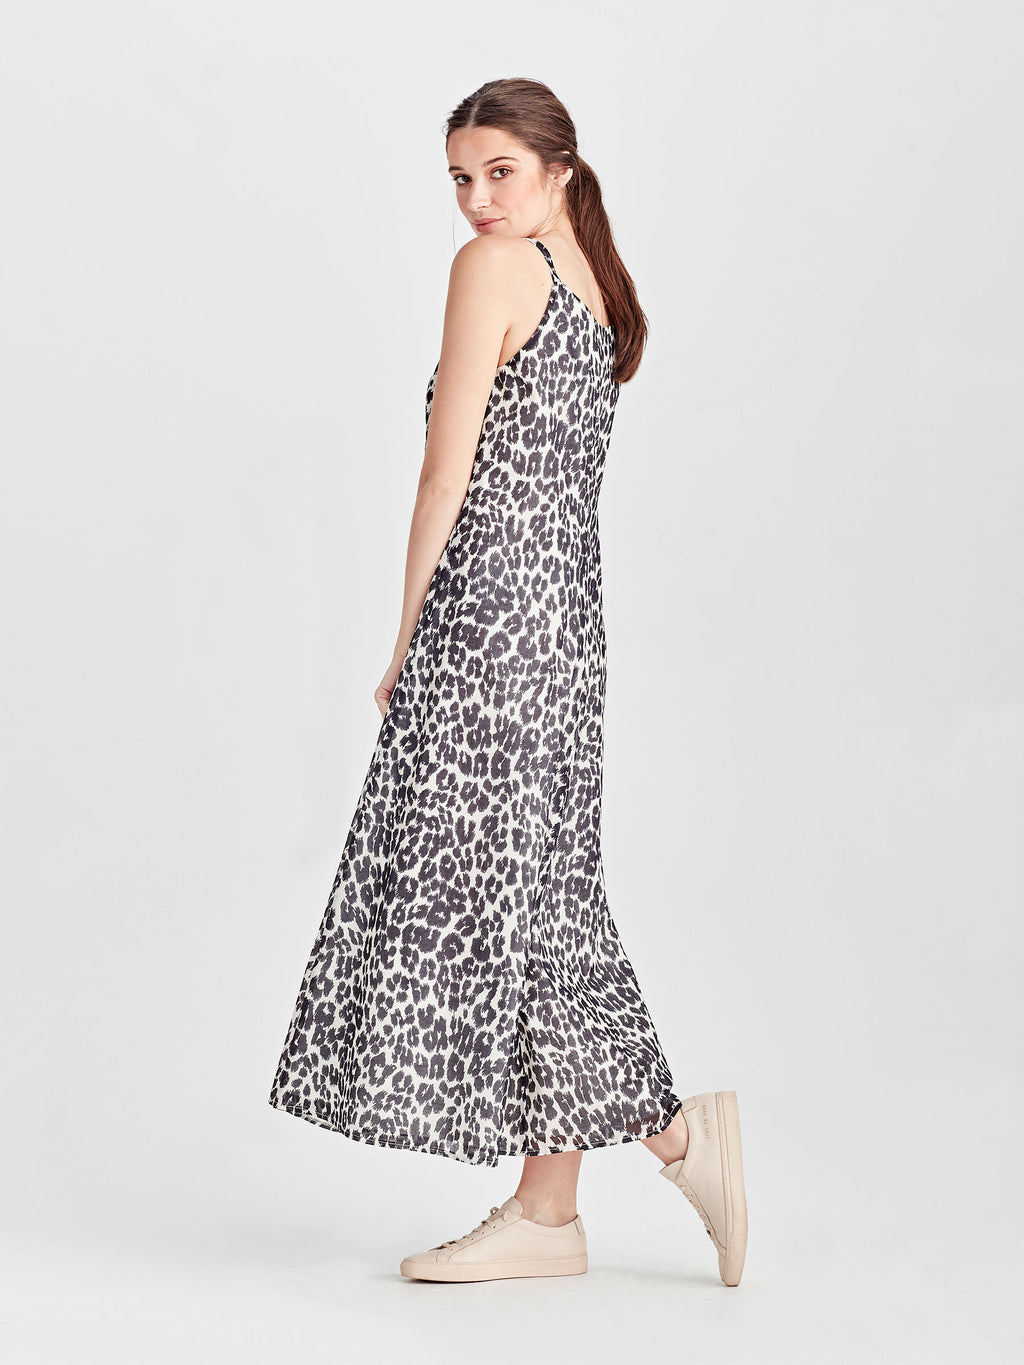 Veronica Dress (Leopard Voile) Scribble